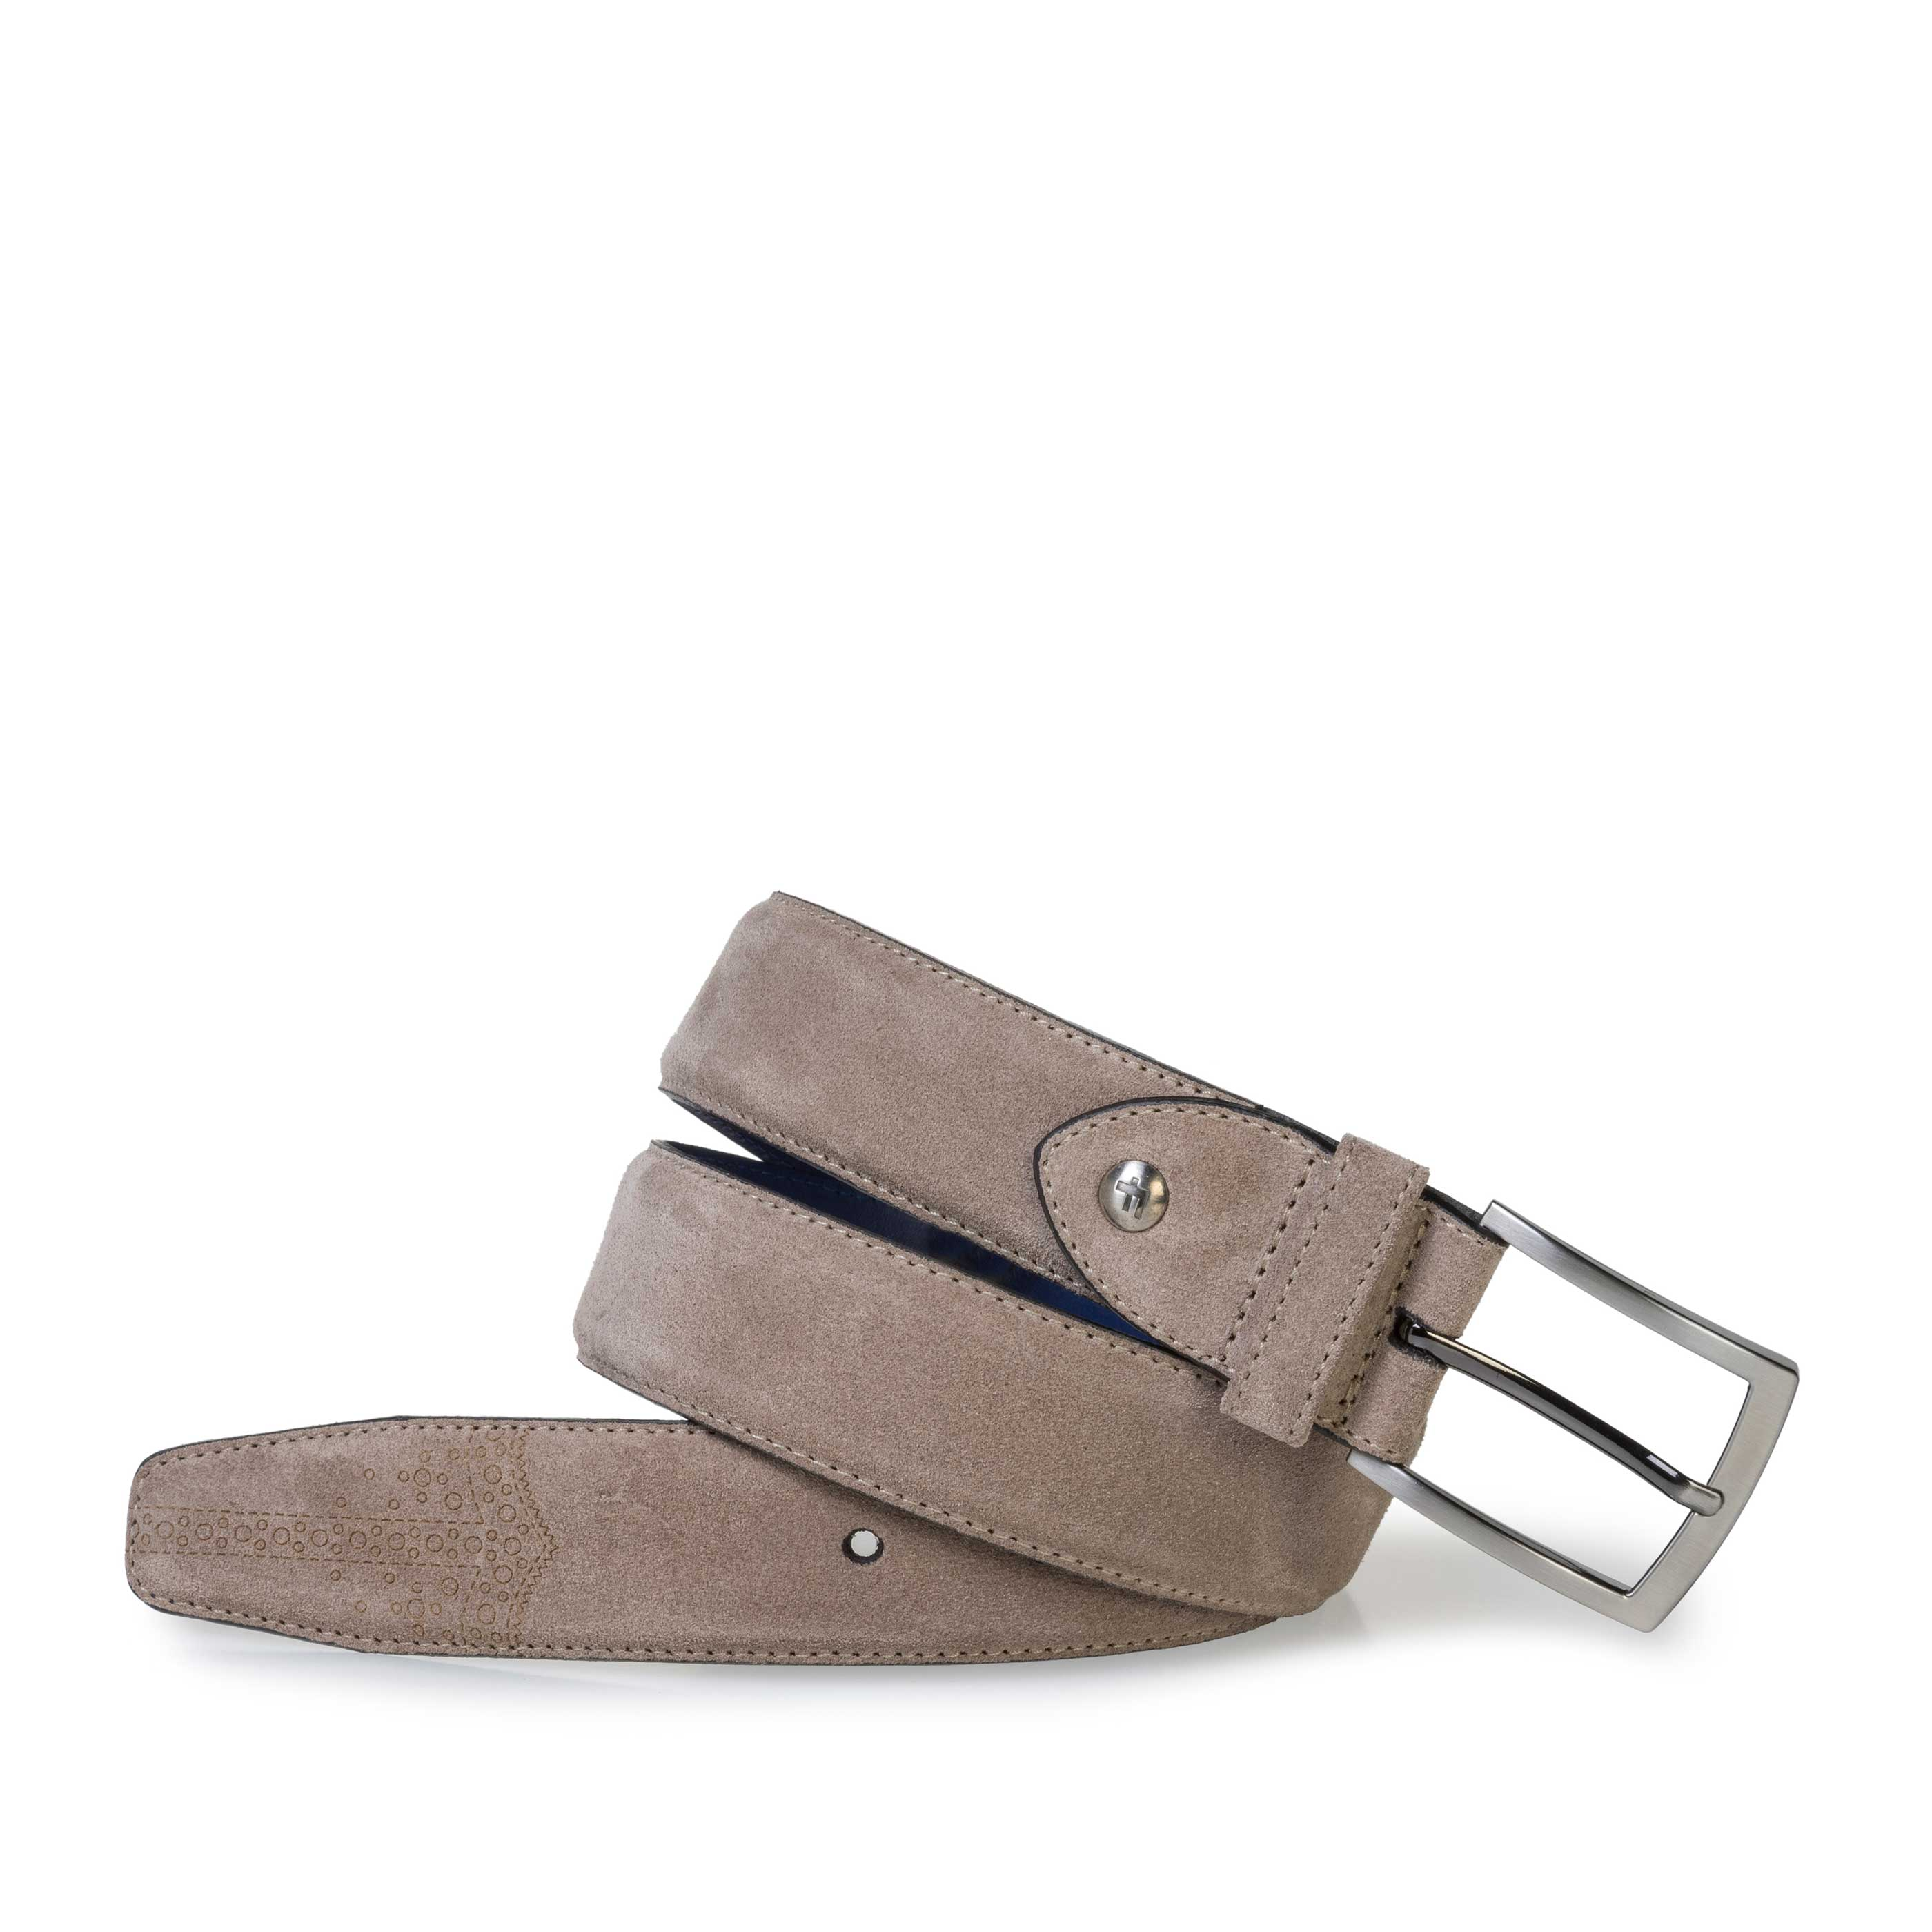 75213/01 - Beige suede leather belt